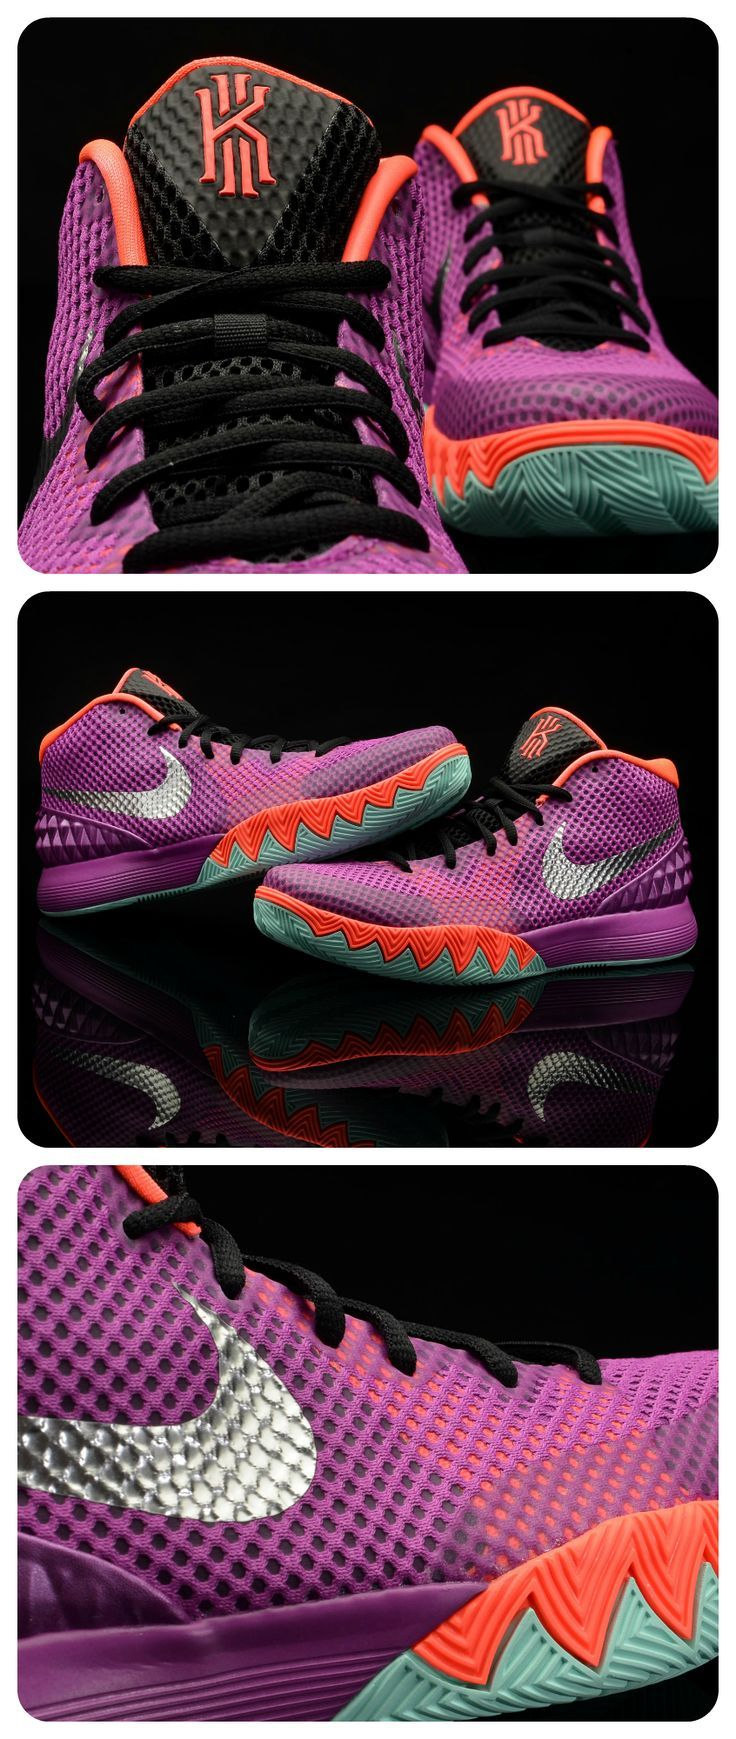 Awesome Adidas Shoes Nike Kyrie 1 Easter edition. #Basketball #Shoes... Check more at http://24shopping.ga/fashion/adidas-shoes-nike-kyrie-1-easter-edition-basketball-shoes-2/